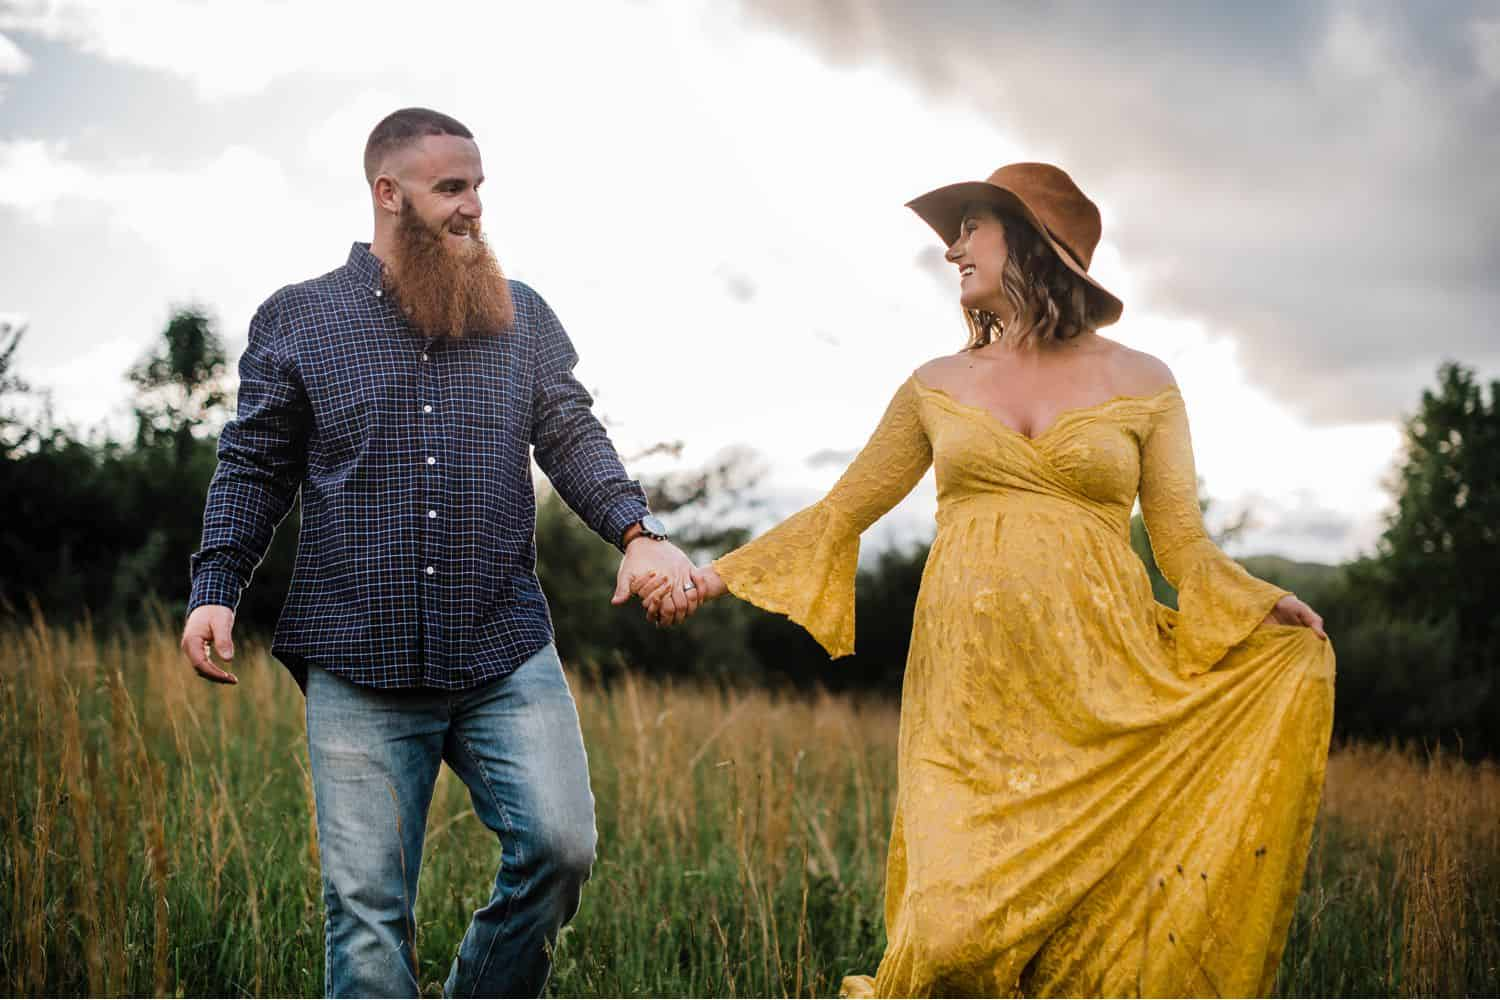 Maternity Poses: man in a plaid shirt walks hand-in-hand with his pregnant wife who is wearing a yellow dress